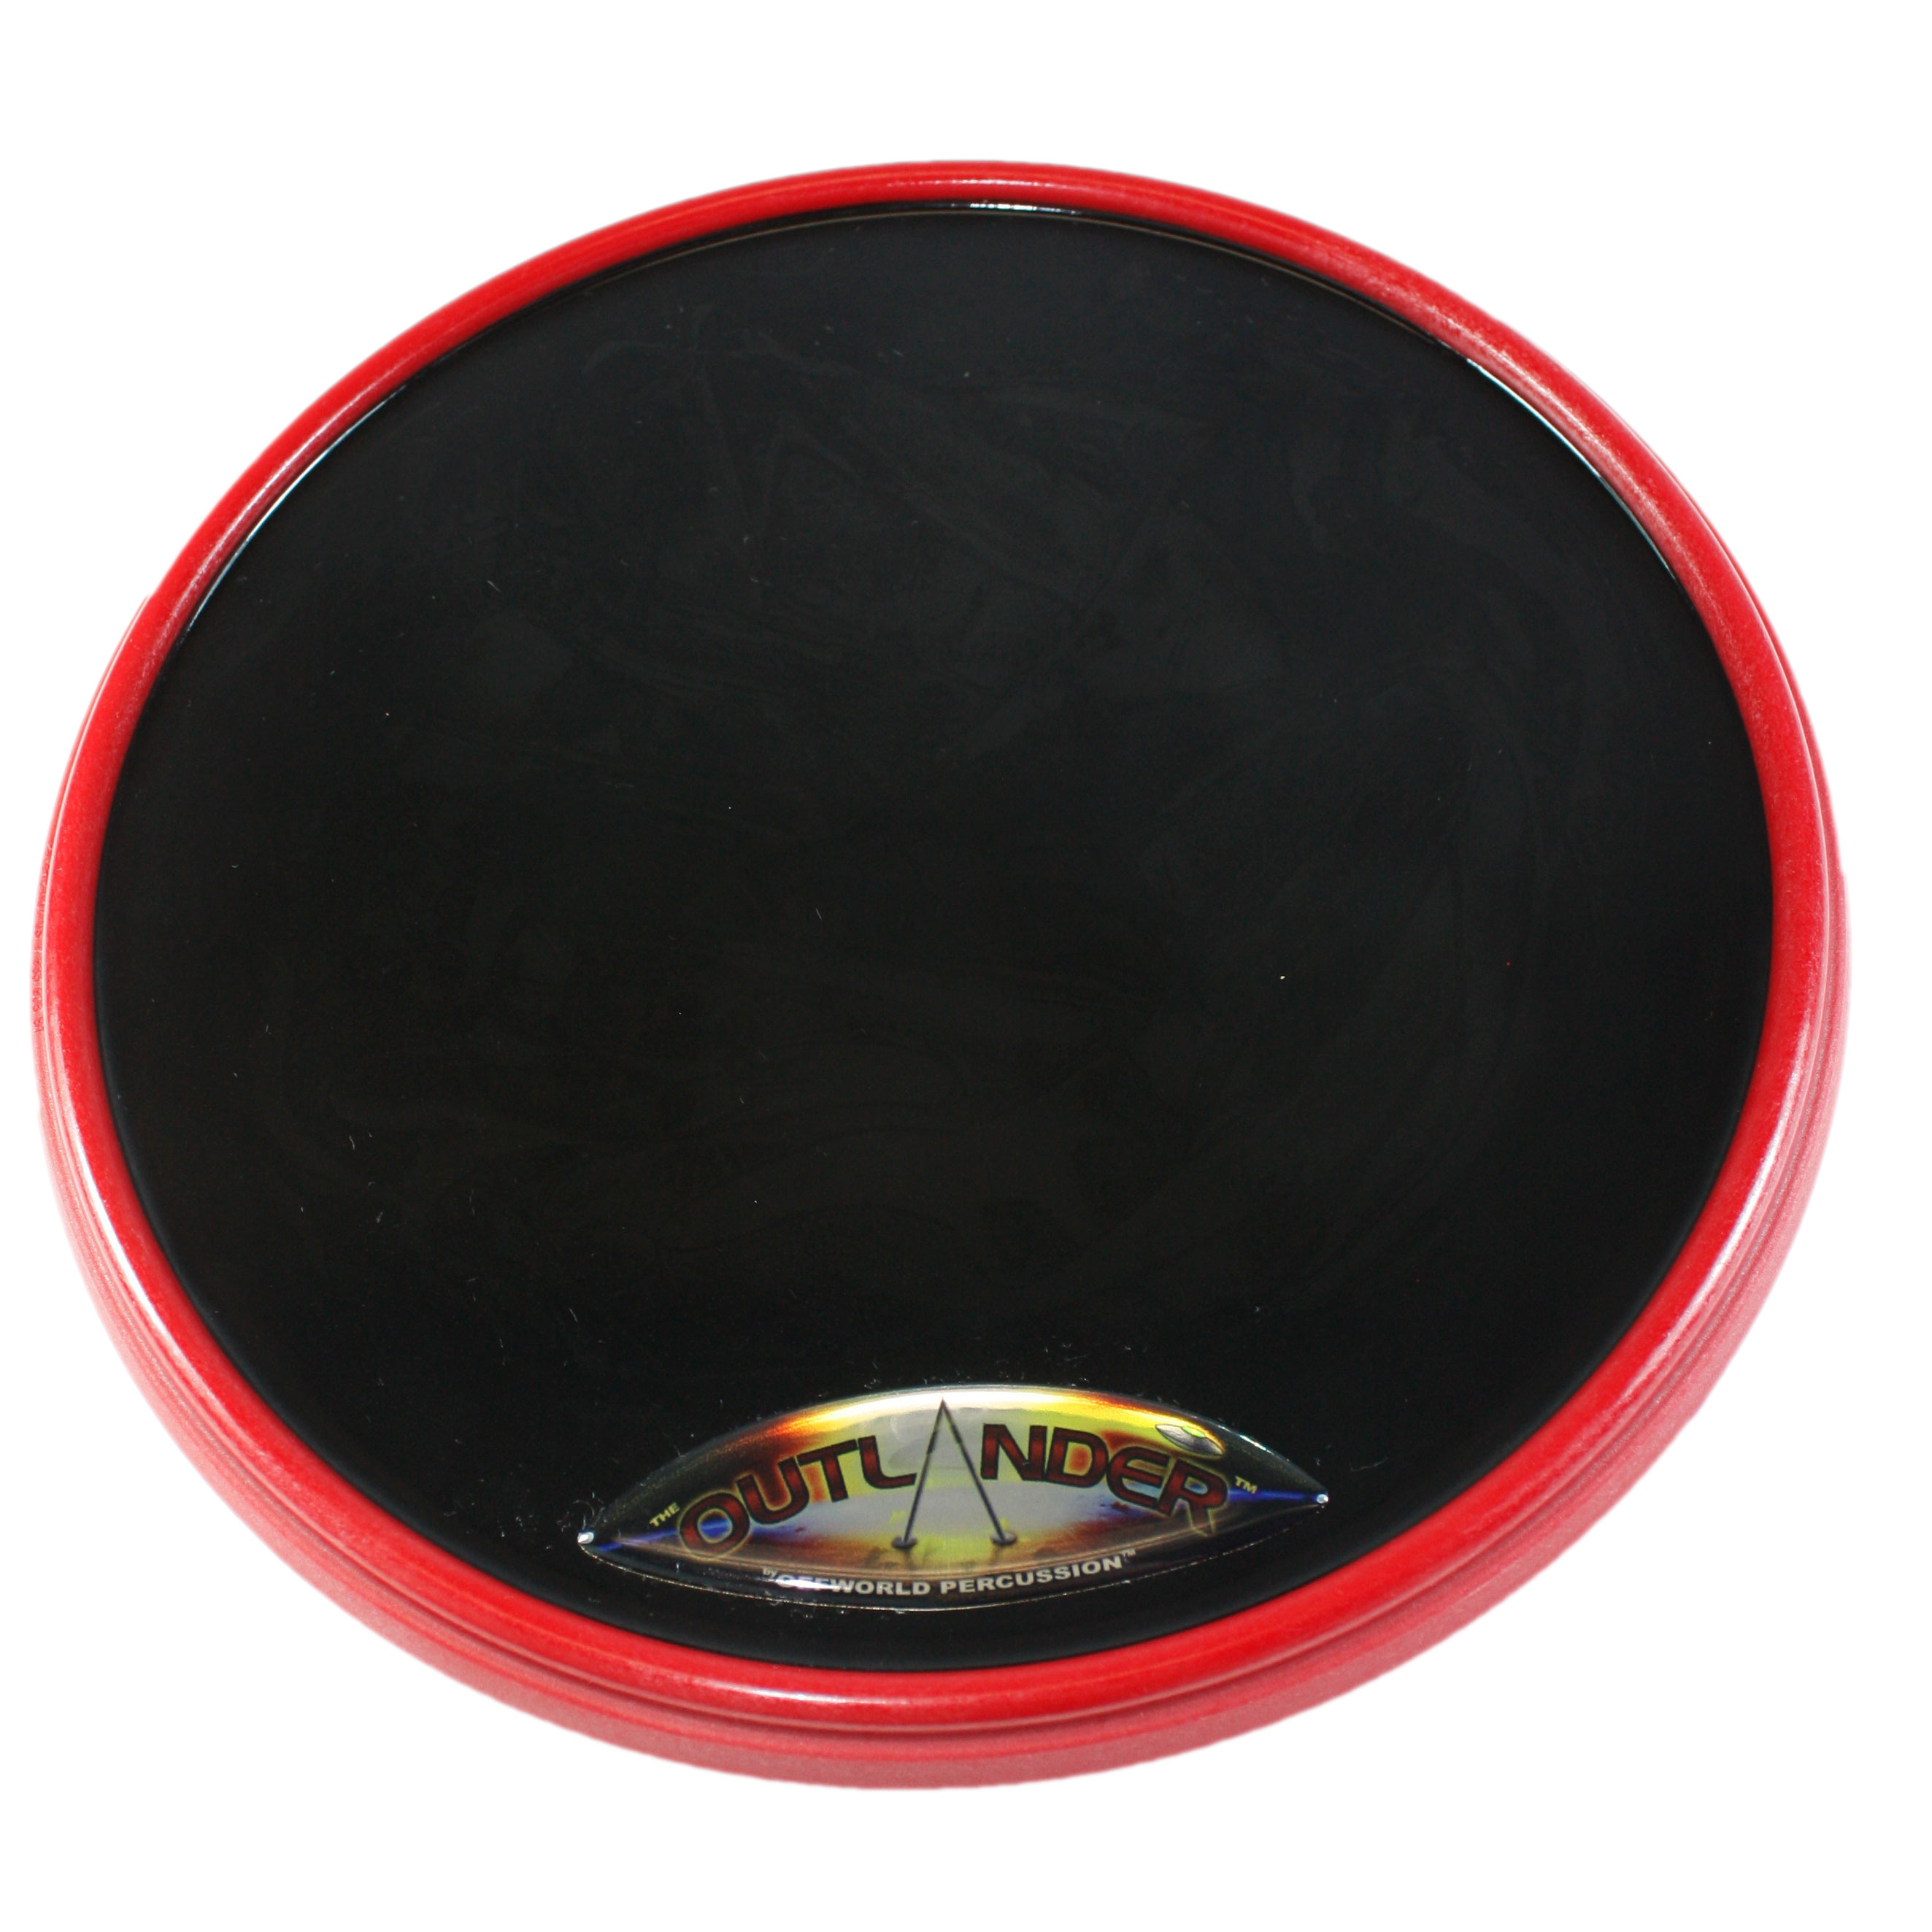 "Offworld Percussion 12"" Outlander Practice Pad with Rim"